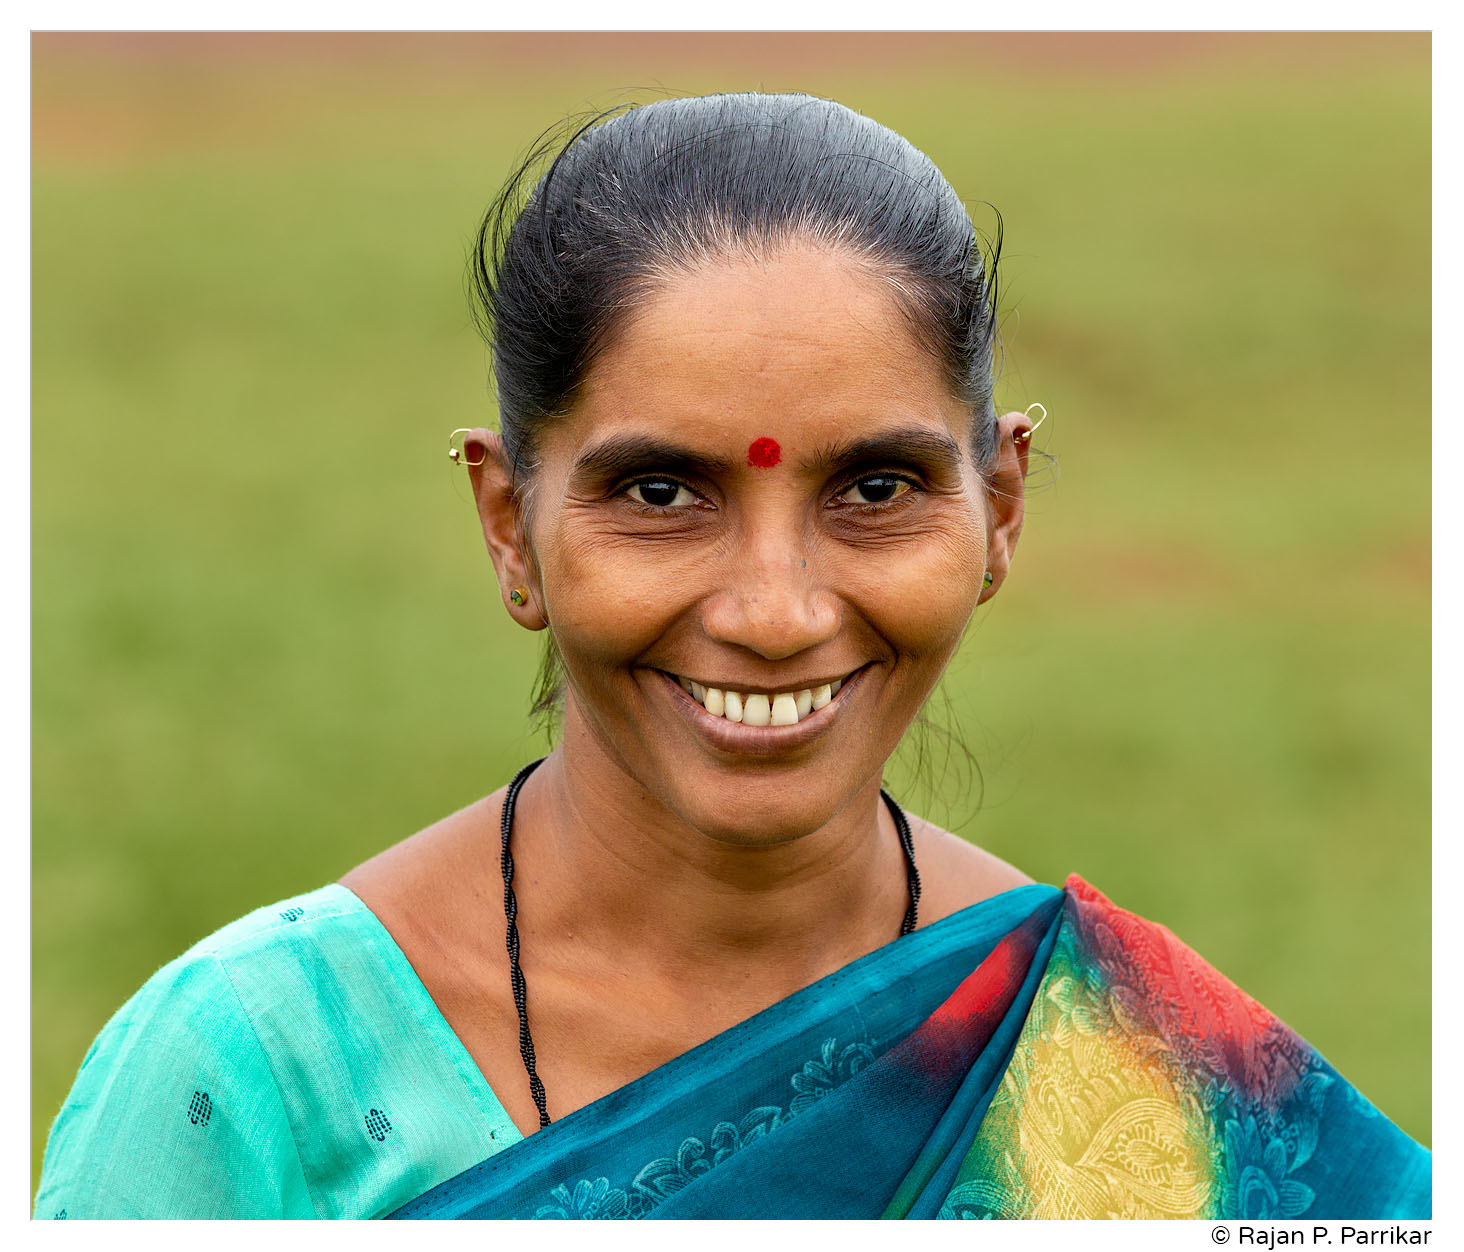 Richa Kandolkar, shepherdess from Korgaon, Goa